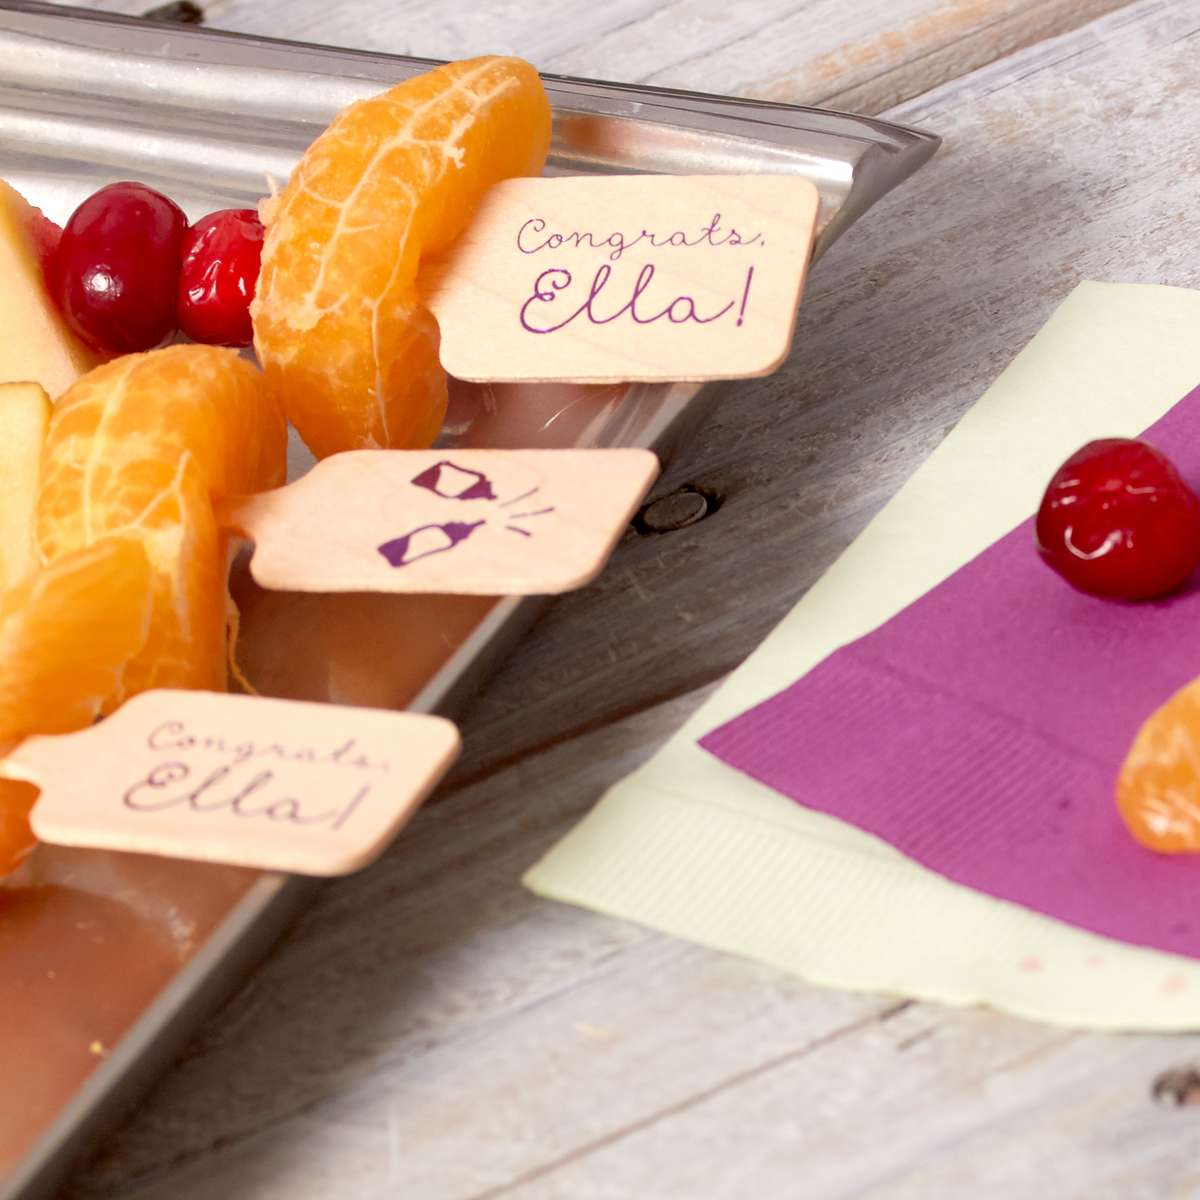 personalized stir sticks used for fruit kebobs